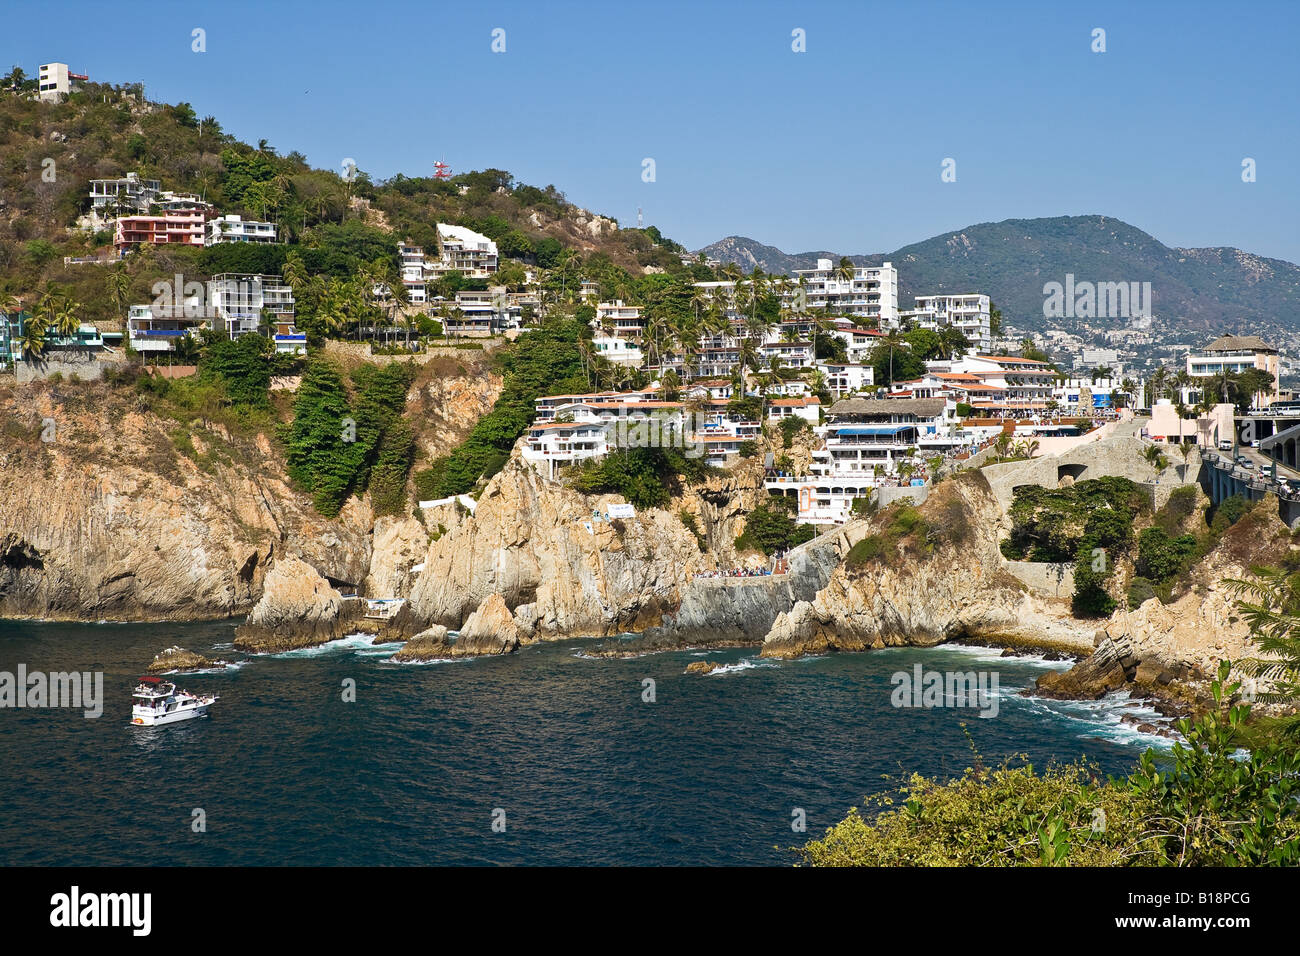 Cliffs from which jump divers that are renowned for their agility, La Quebrada, Acapulco, Guerrero, Mexico. - Stock Image